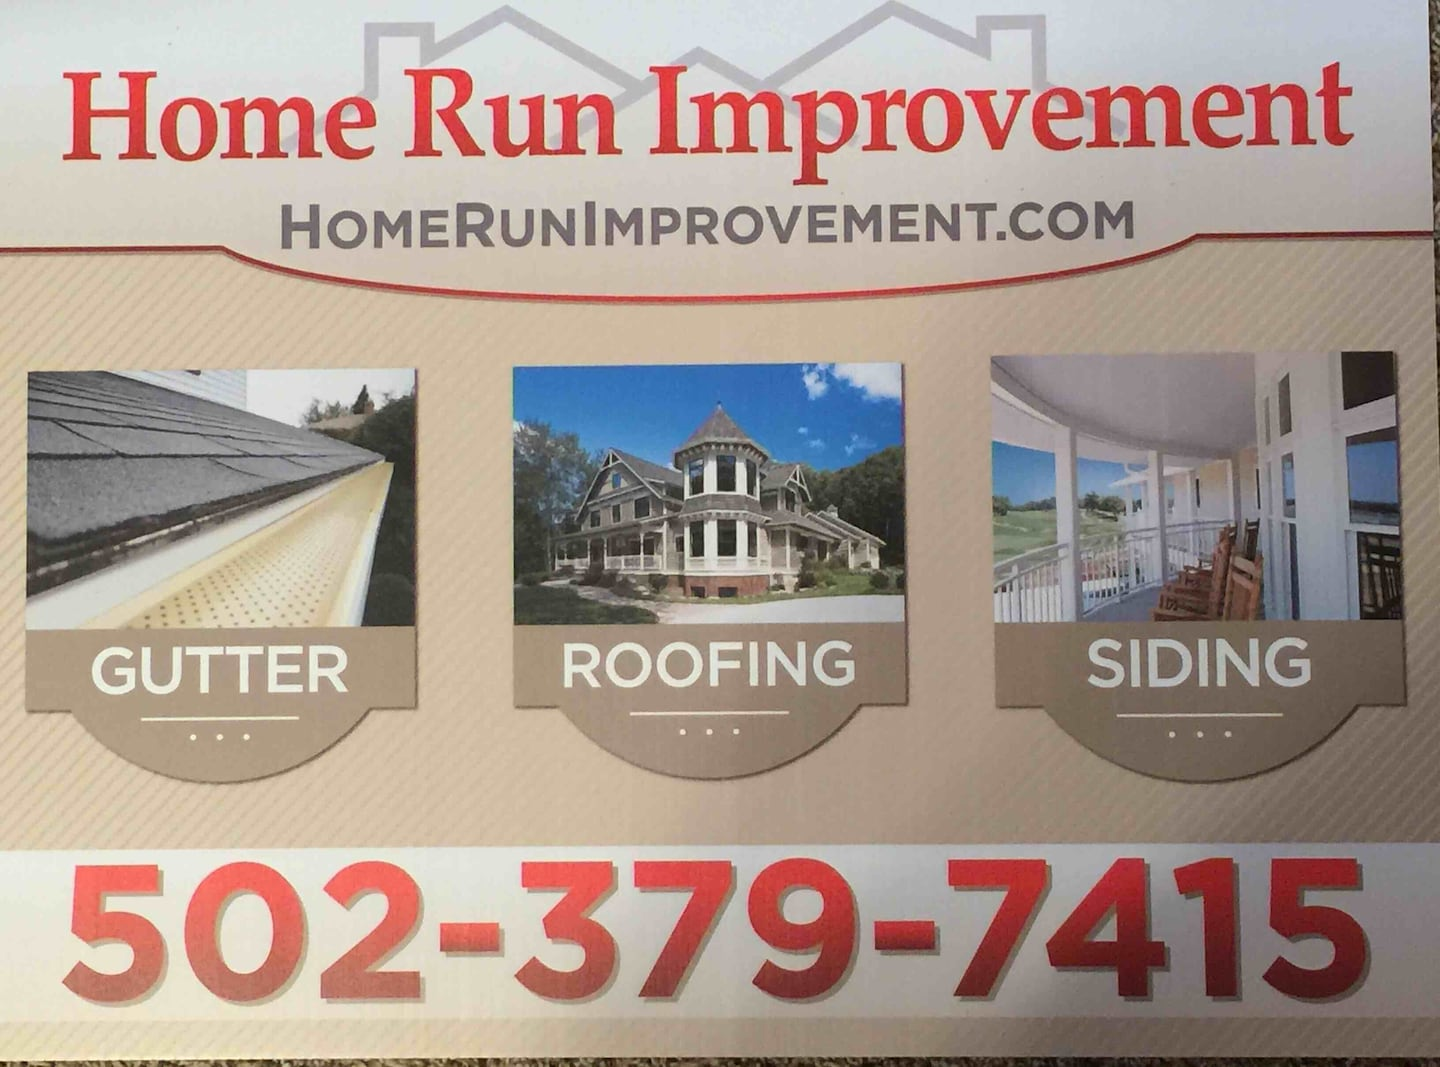 Home Run Improvement